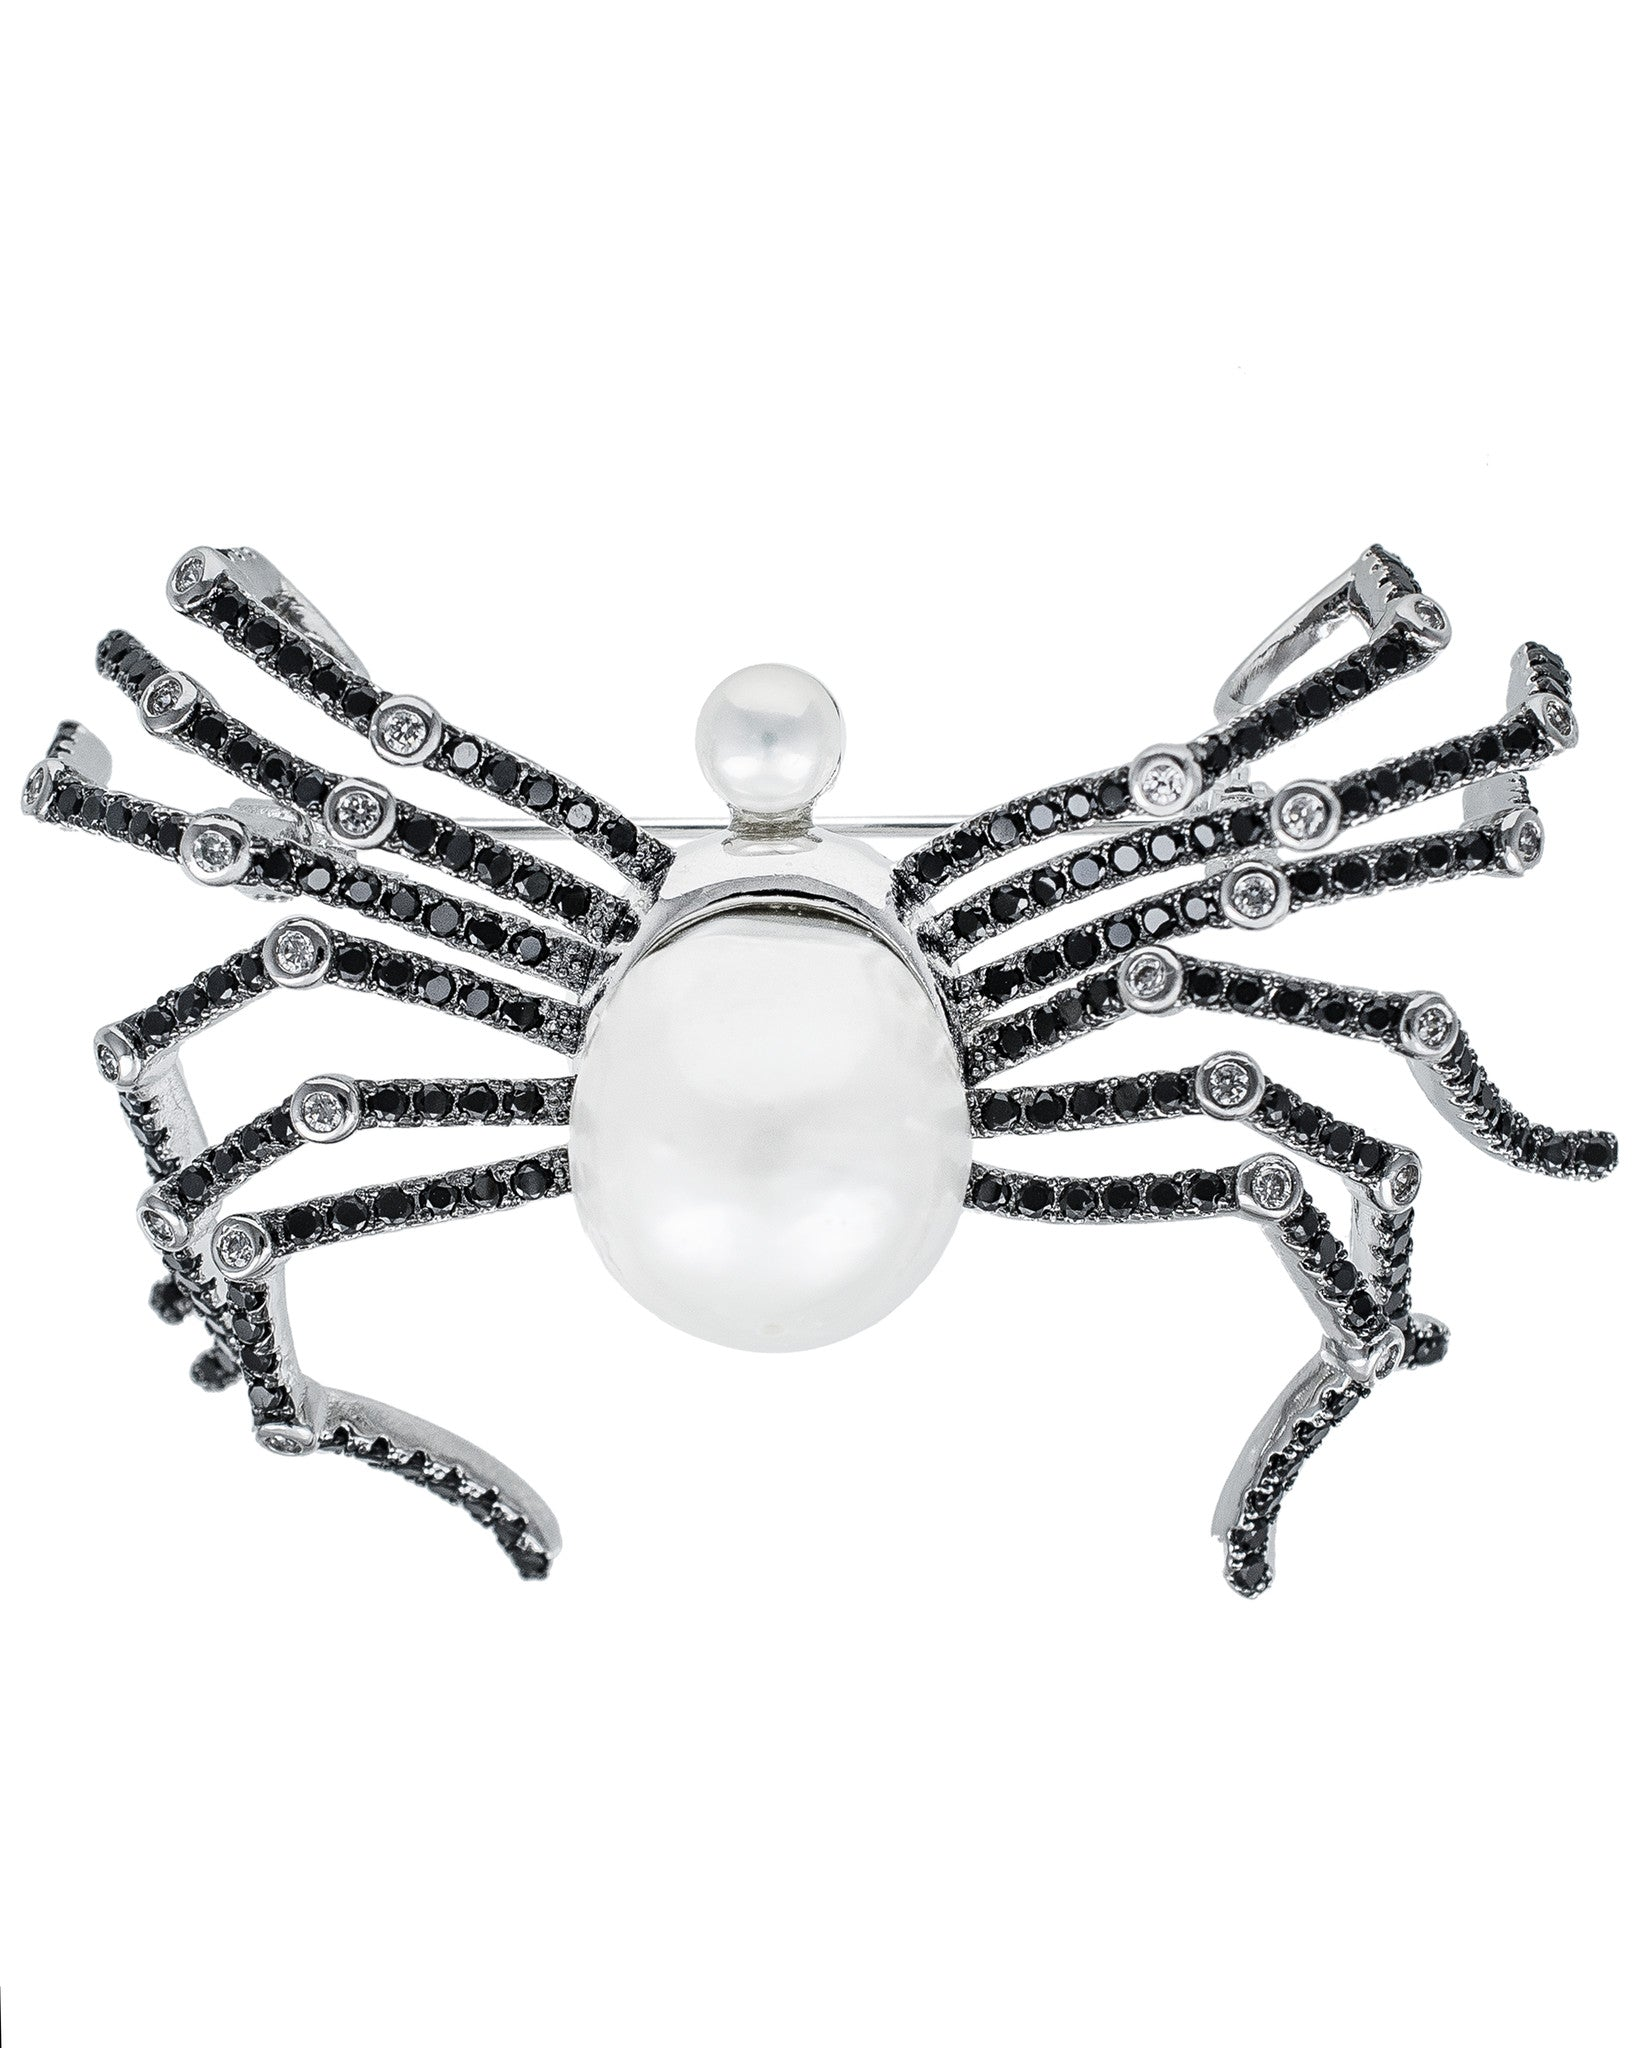 Pave Spider Brooch